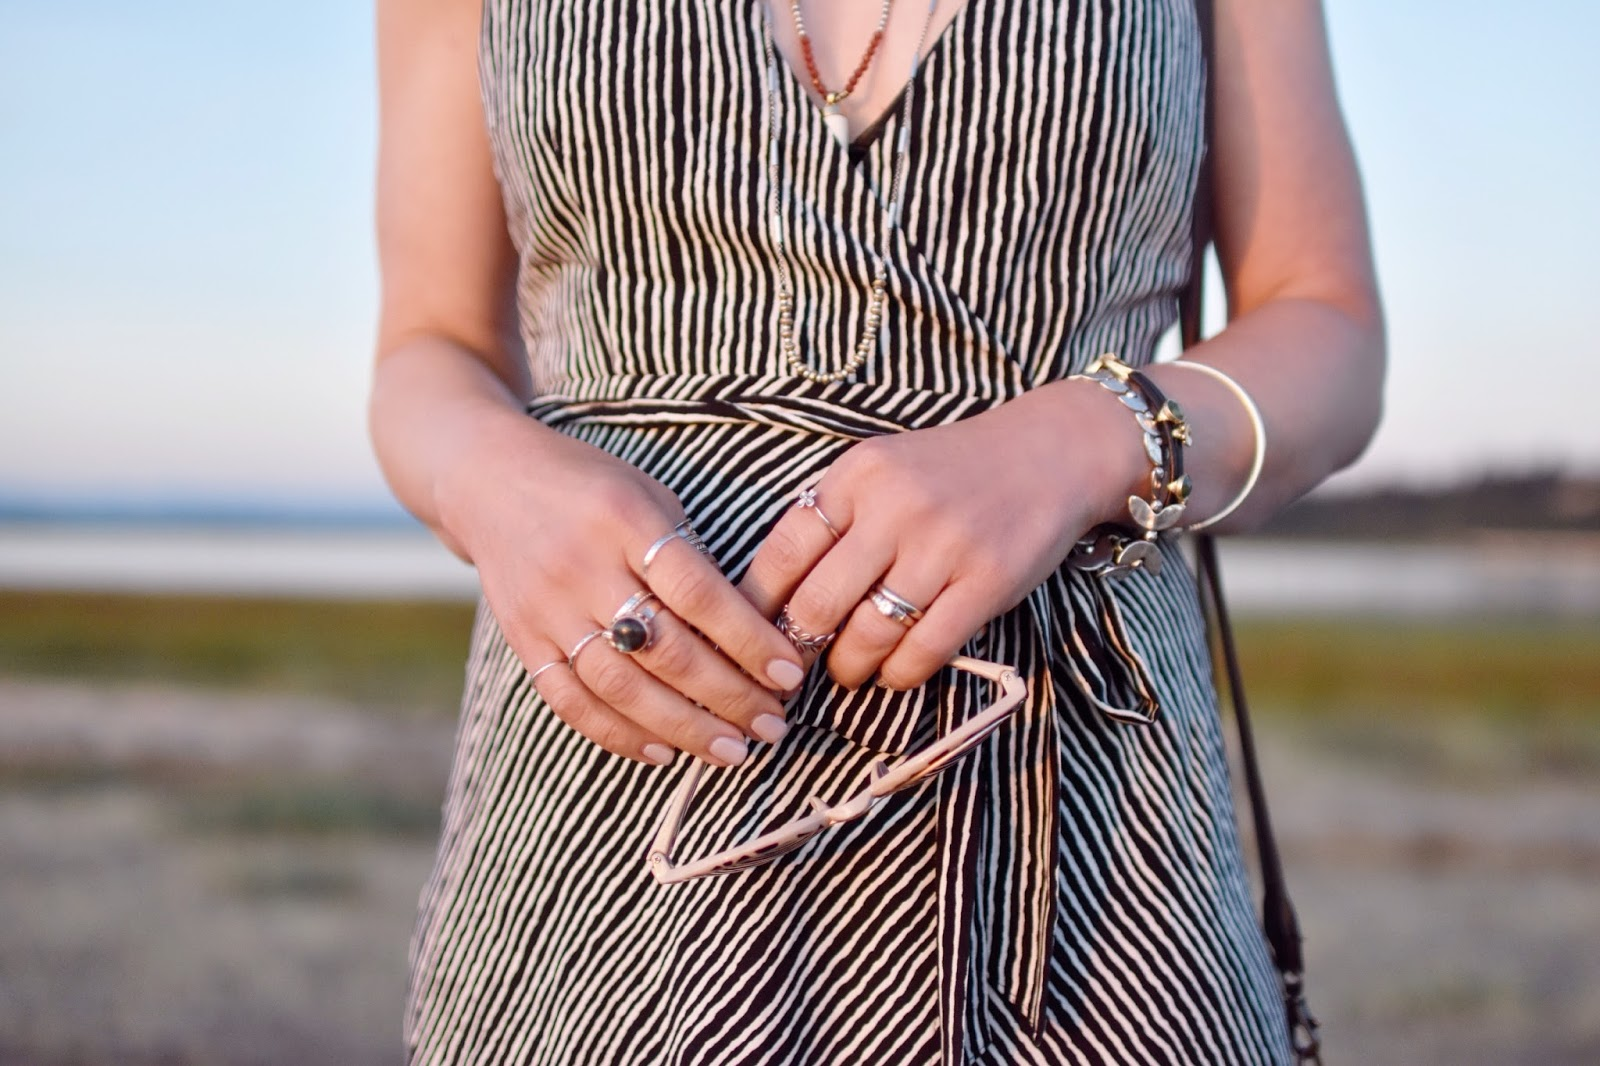 Monika Faulkner personal style inspiration - black and white striped maxi-dress, animal patterned sunglasses, stacked rings